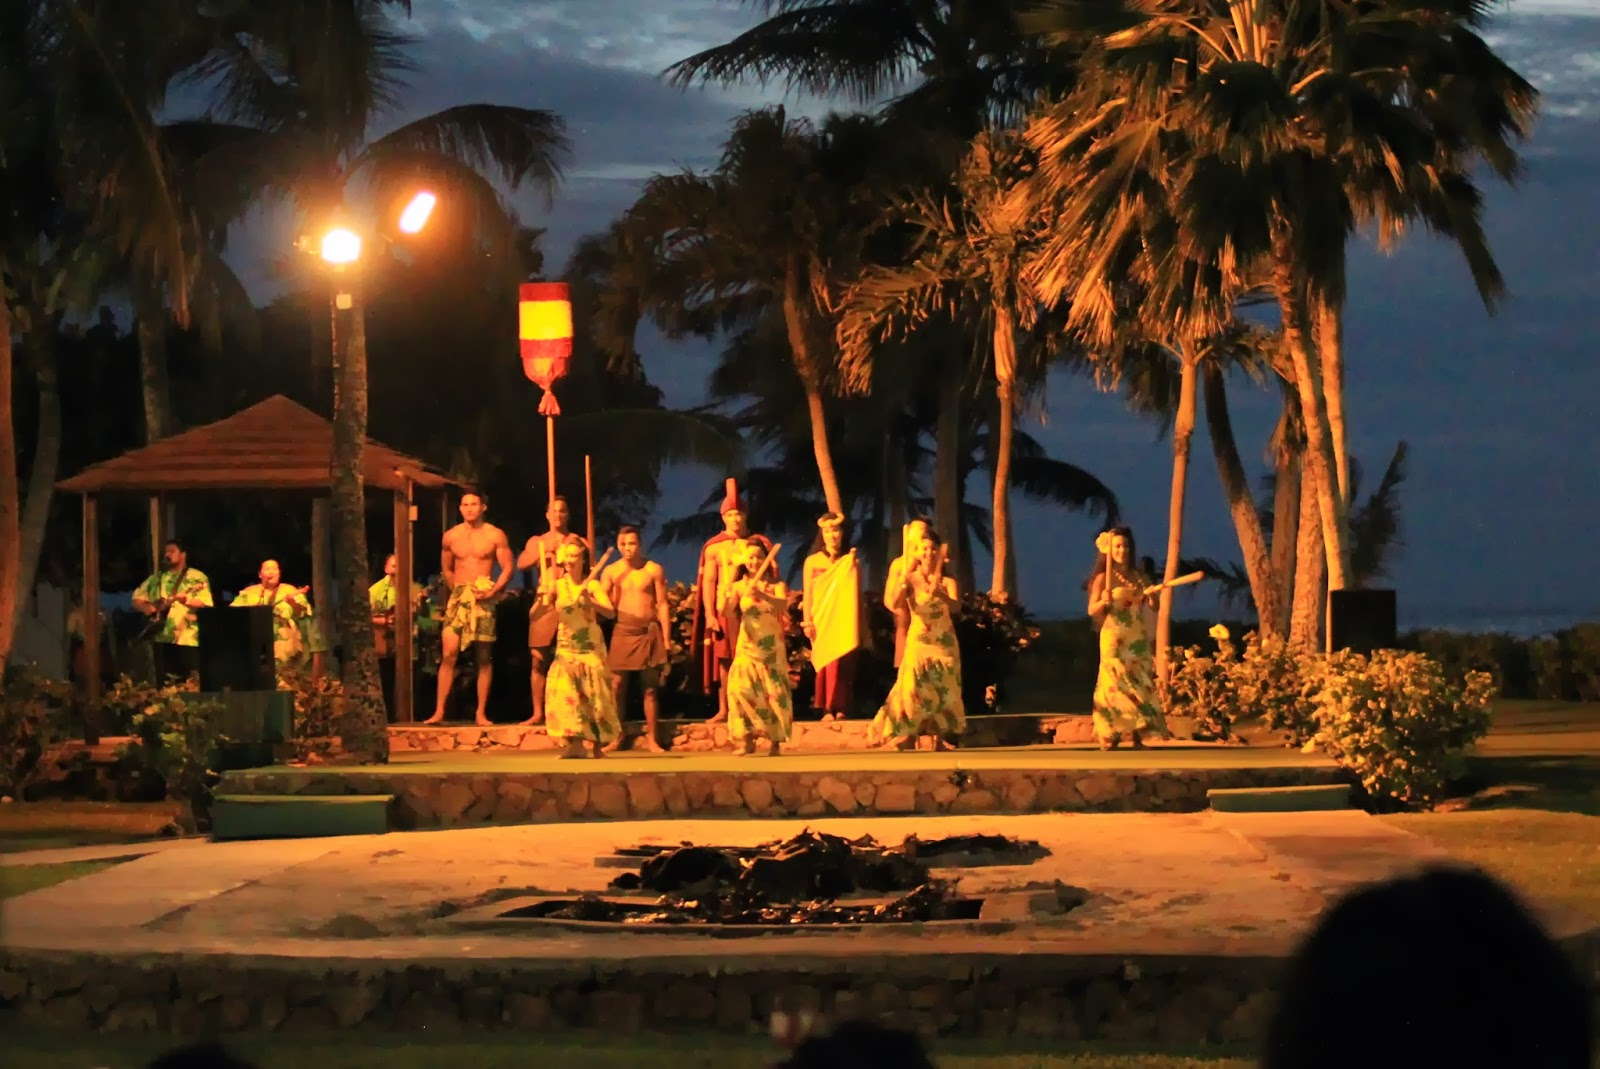 Waiting for the luau pig to be presented. Photo: Just J